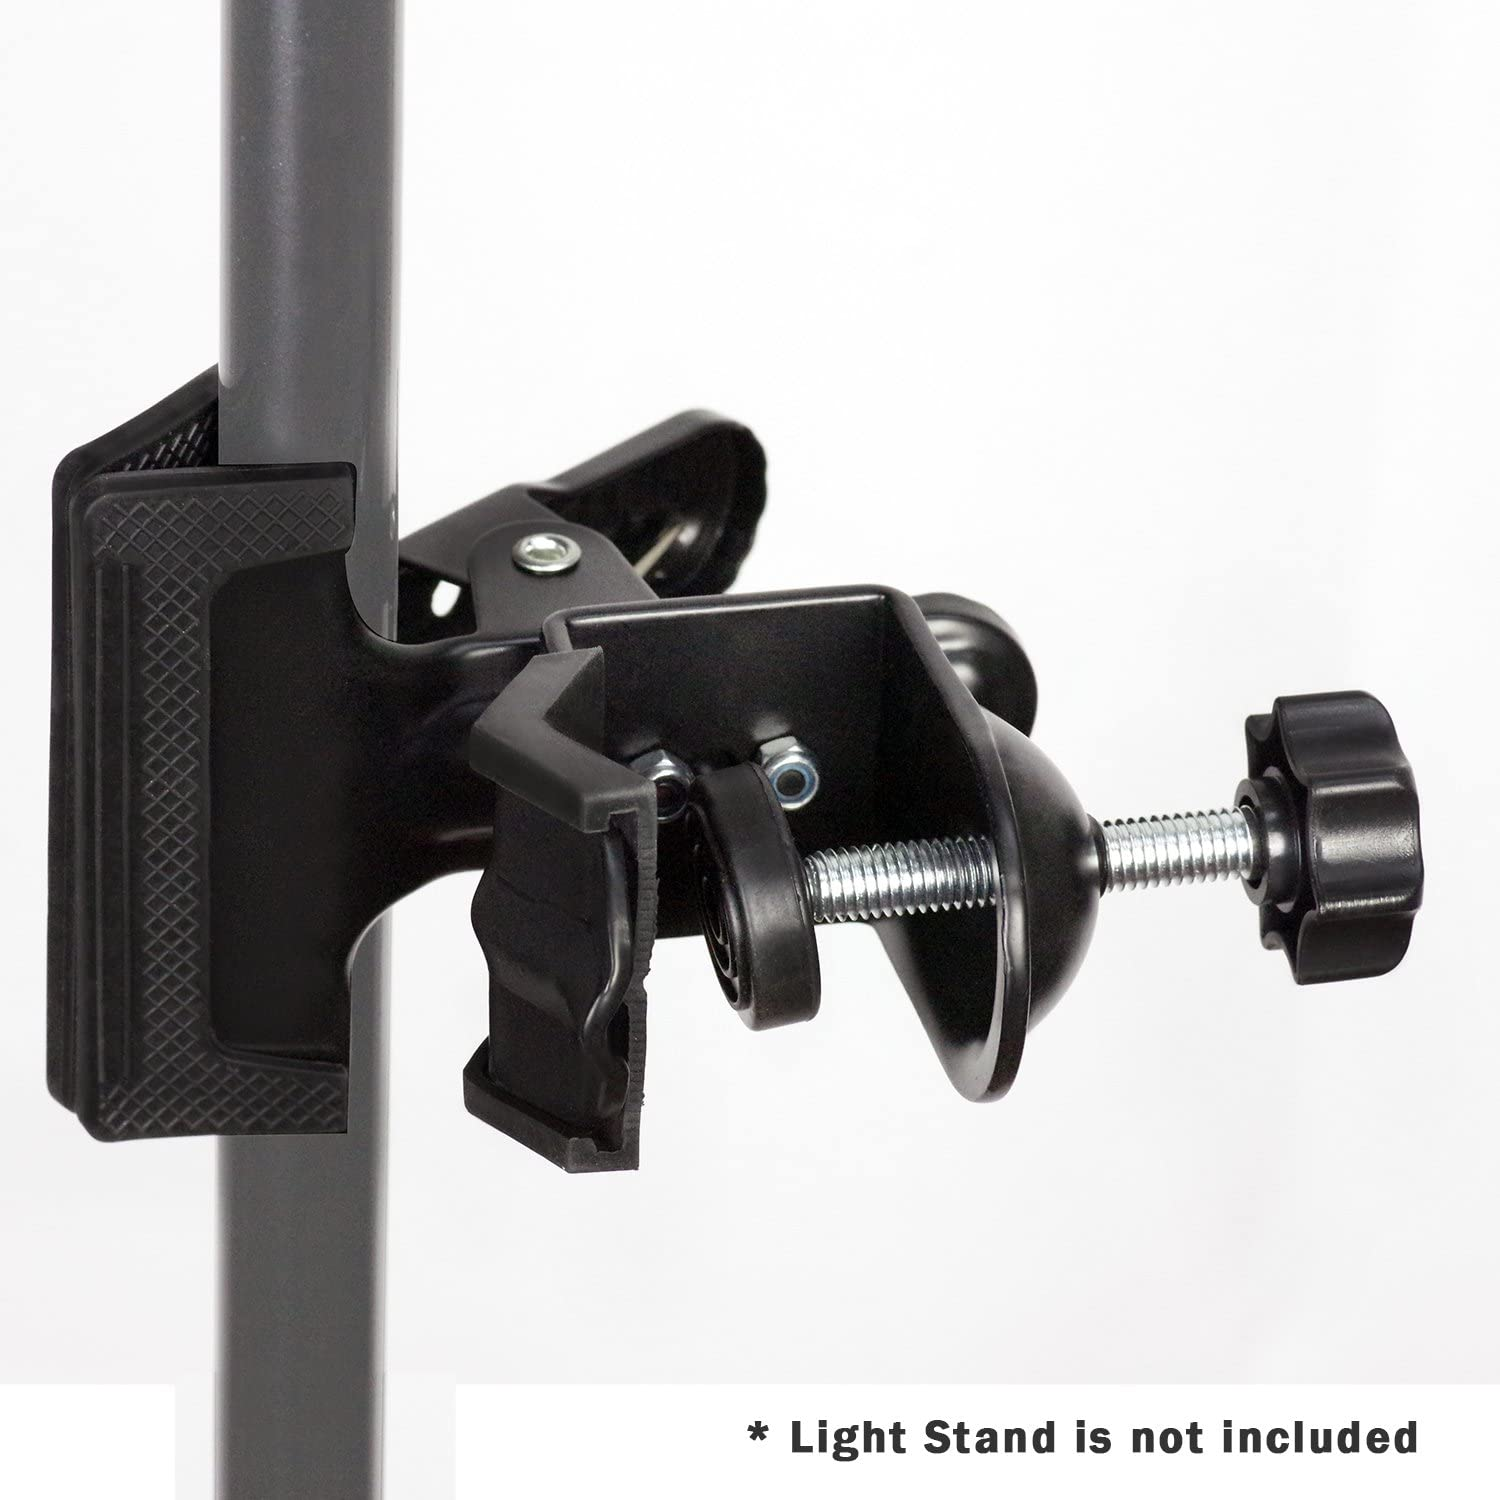 AGG2422 LimoStudio 2 in 1 Mounting Black Spring Clip Clamp Holder with C-Clamp for Photo Studio Light Stand Tripod Boom Arm Backdrop Support